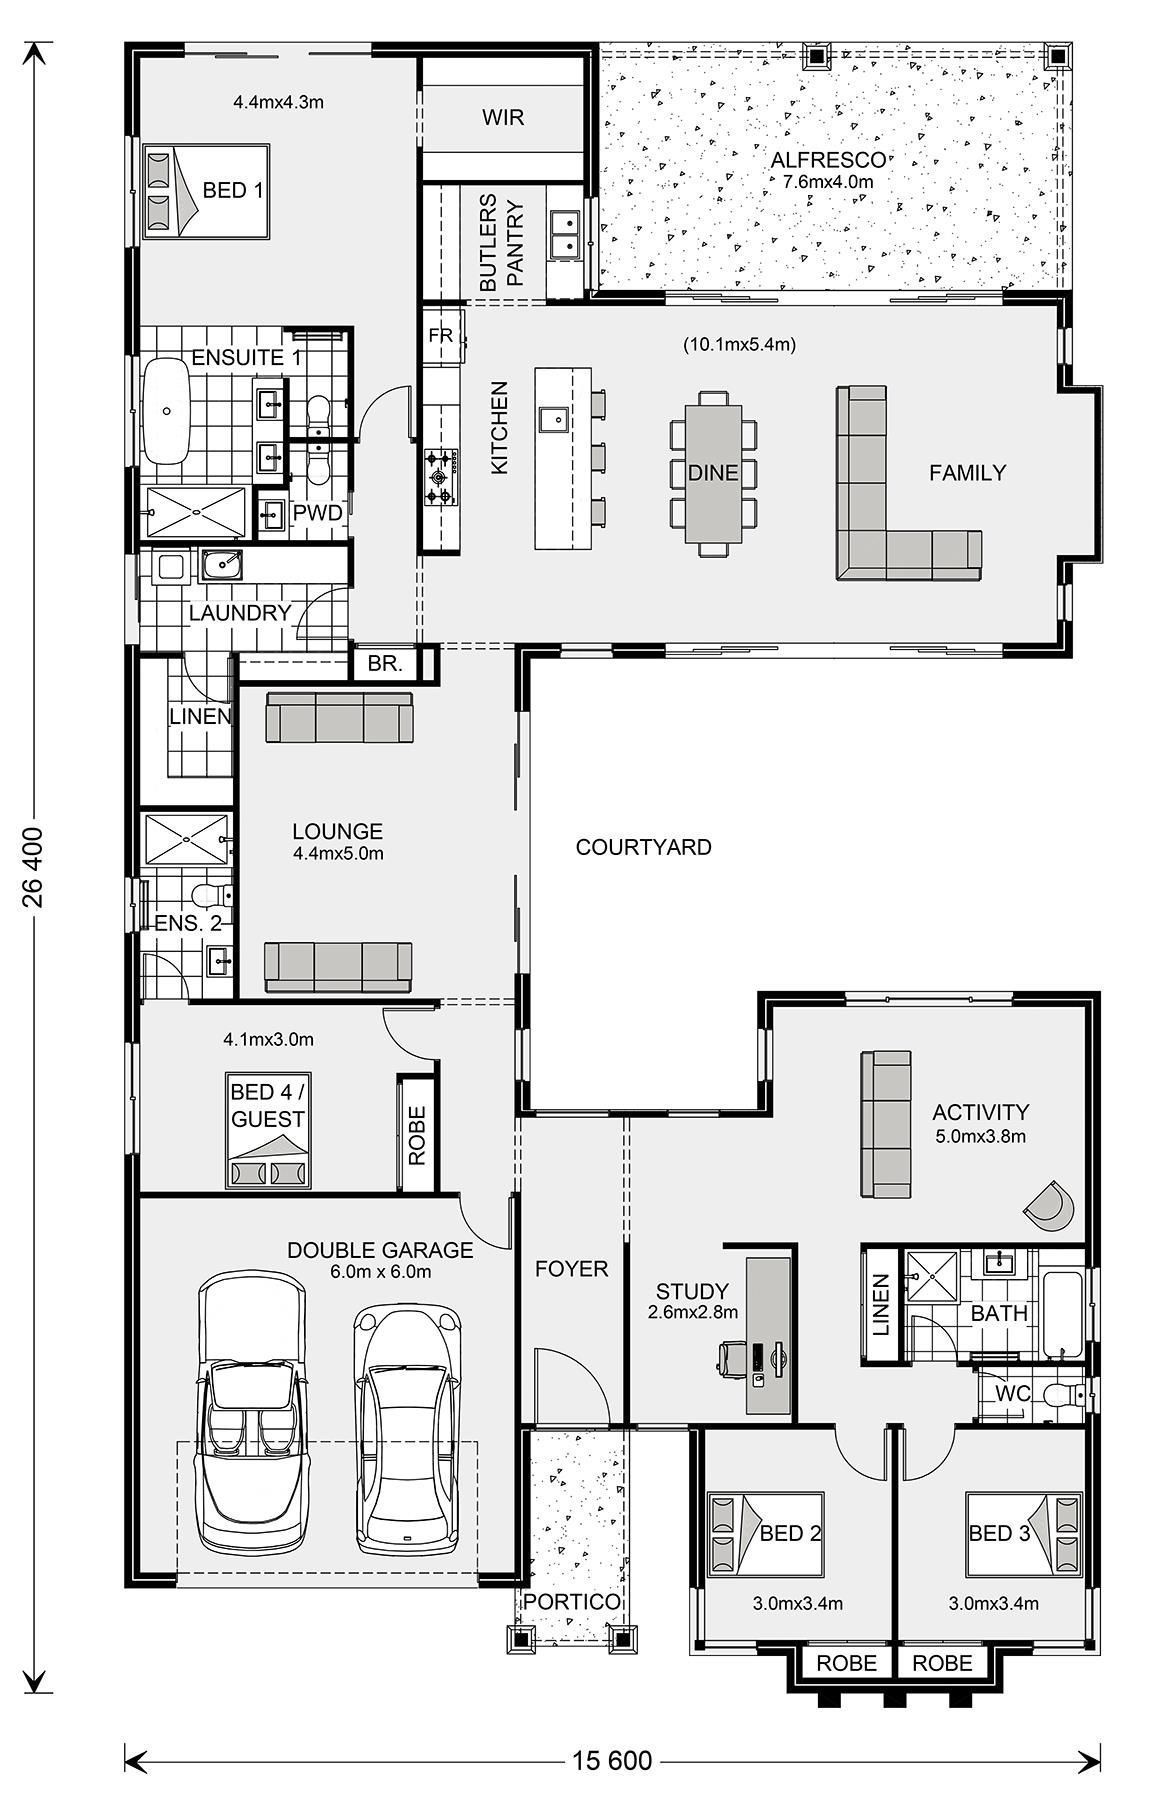 House Floor Plans Maker 2021 Bungalow Floor Plans Home Design Floor Plans Floor Plan Design